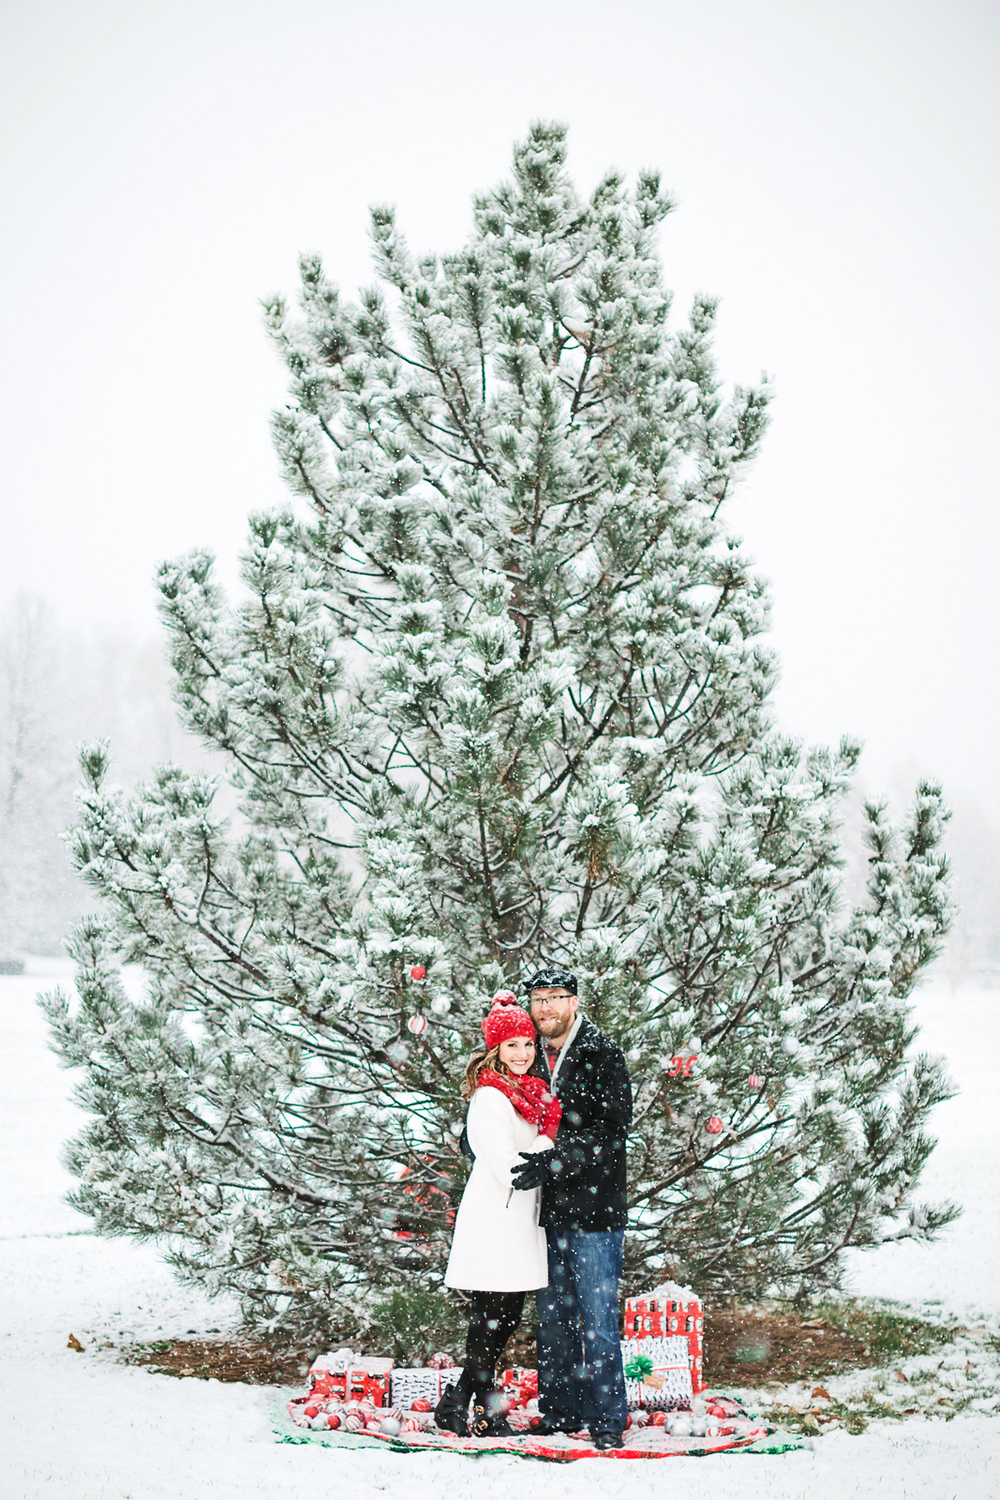 Oldani-Photography-St-Louis-Forest-Park-Engagement-Photos-Snow_20141116_16284310.jpg